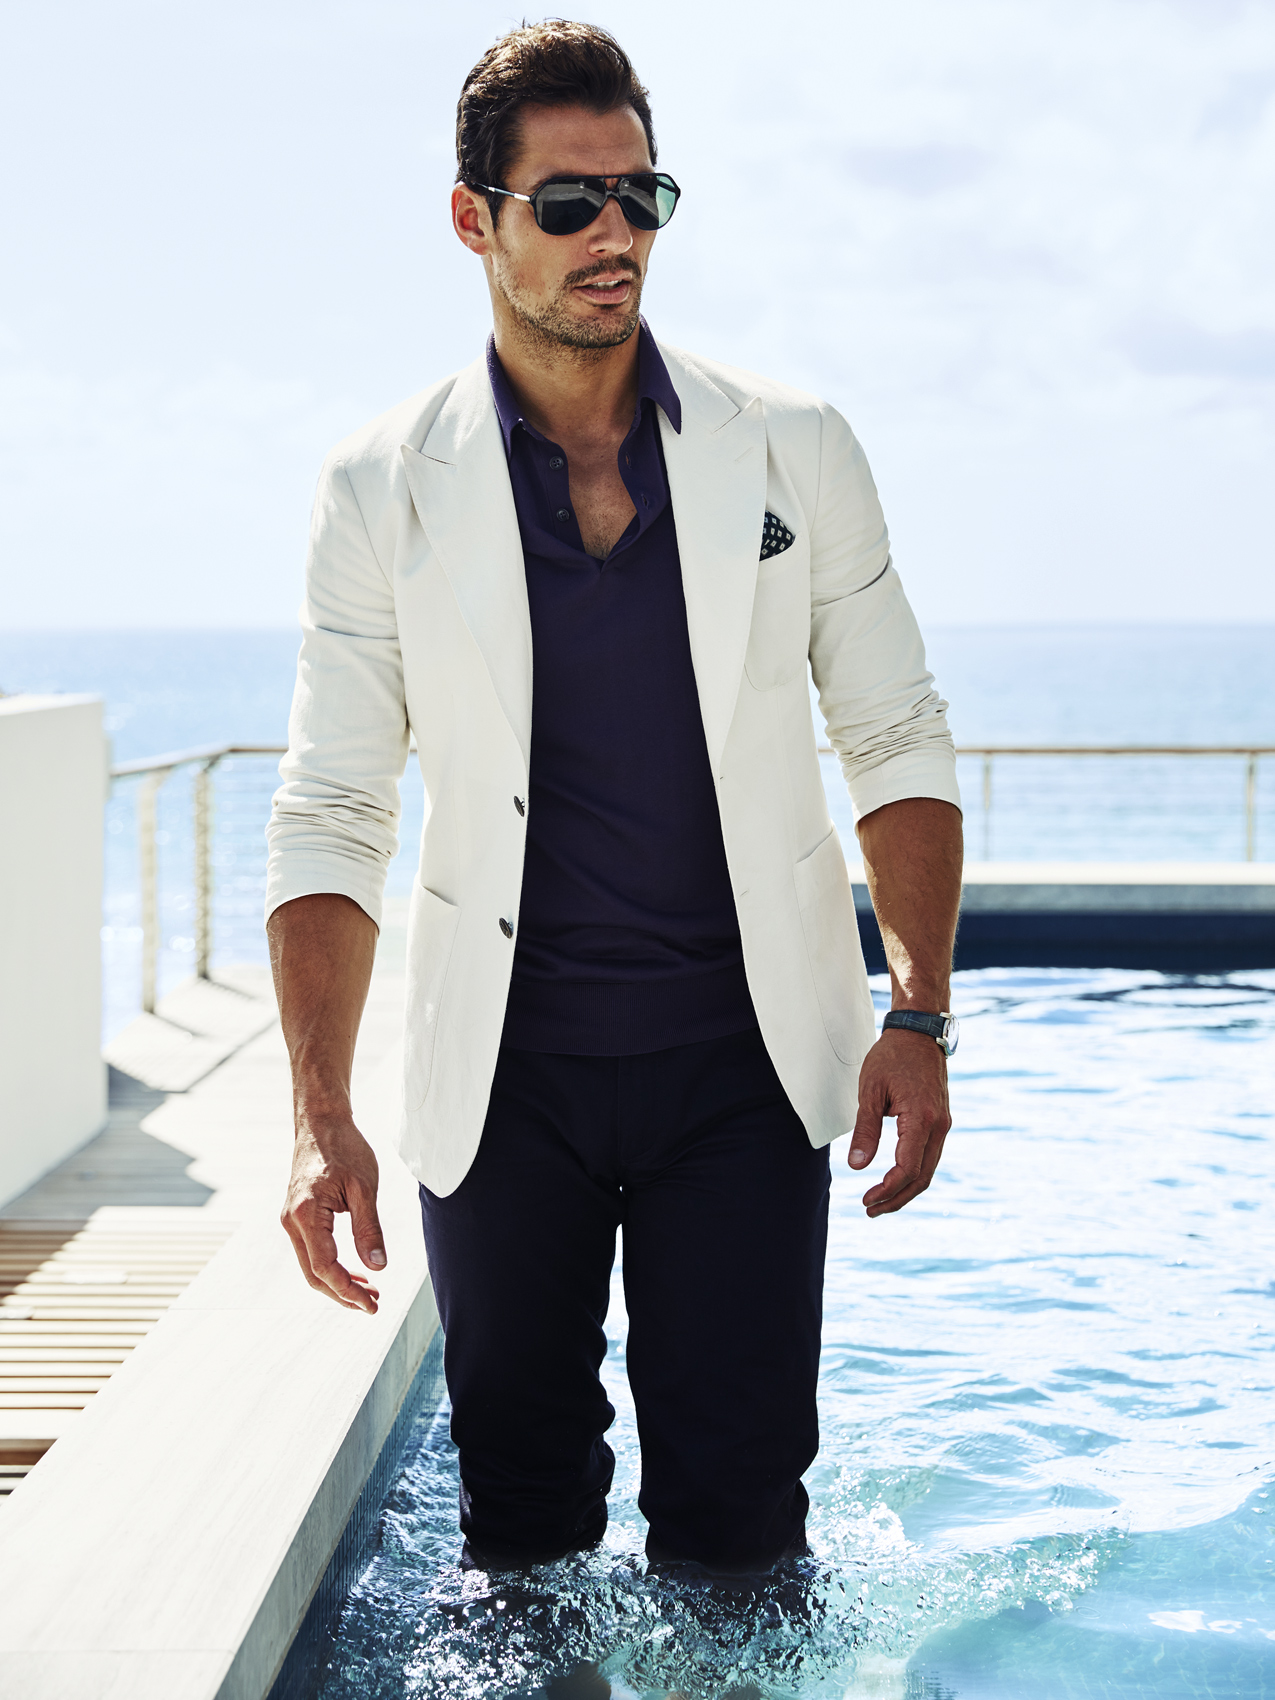 20150711_JR_DavidGandy_0222B_flat_web